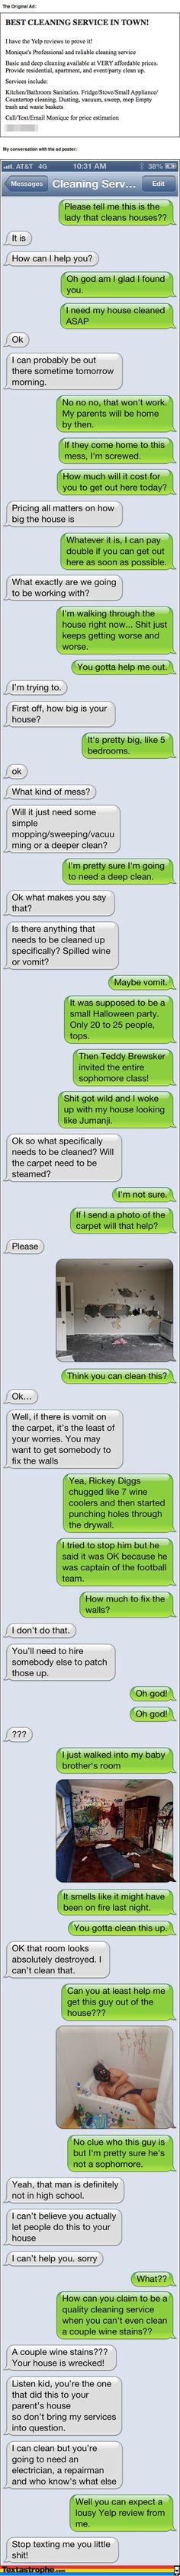 holy crap, hilarious epic text pranks! thank you husband for showing me this!